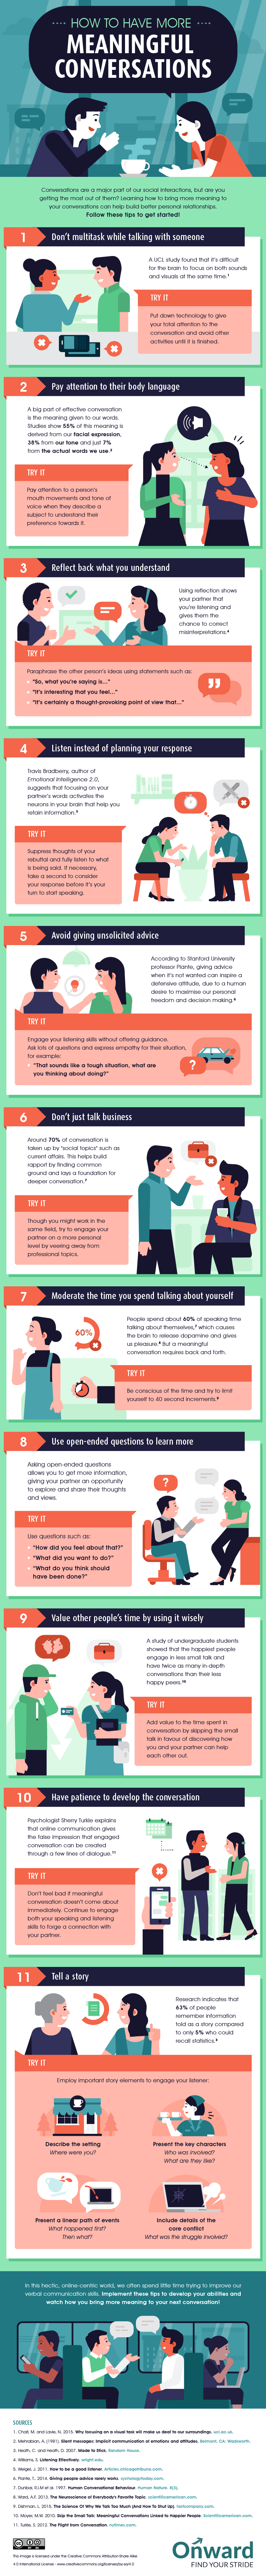 How to Have More Meaningful Conversations Infographic